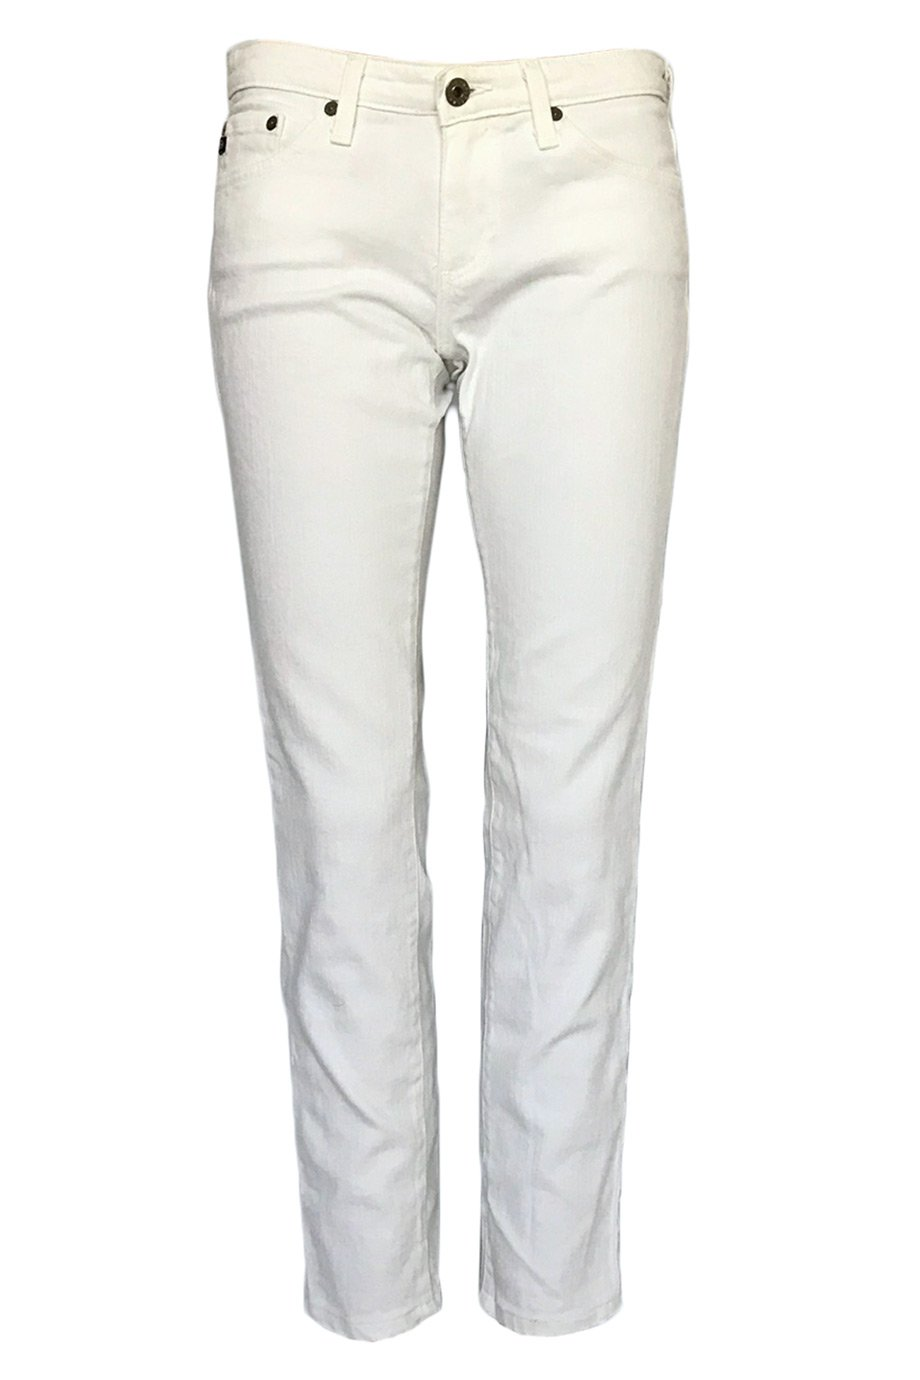 "AG Adriano Goldschmied White Denim ""The Stilt"" Straight Jeans / Sz 27-Style Therapy"